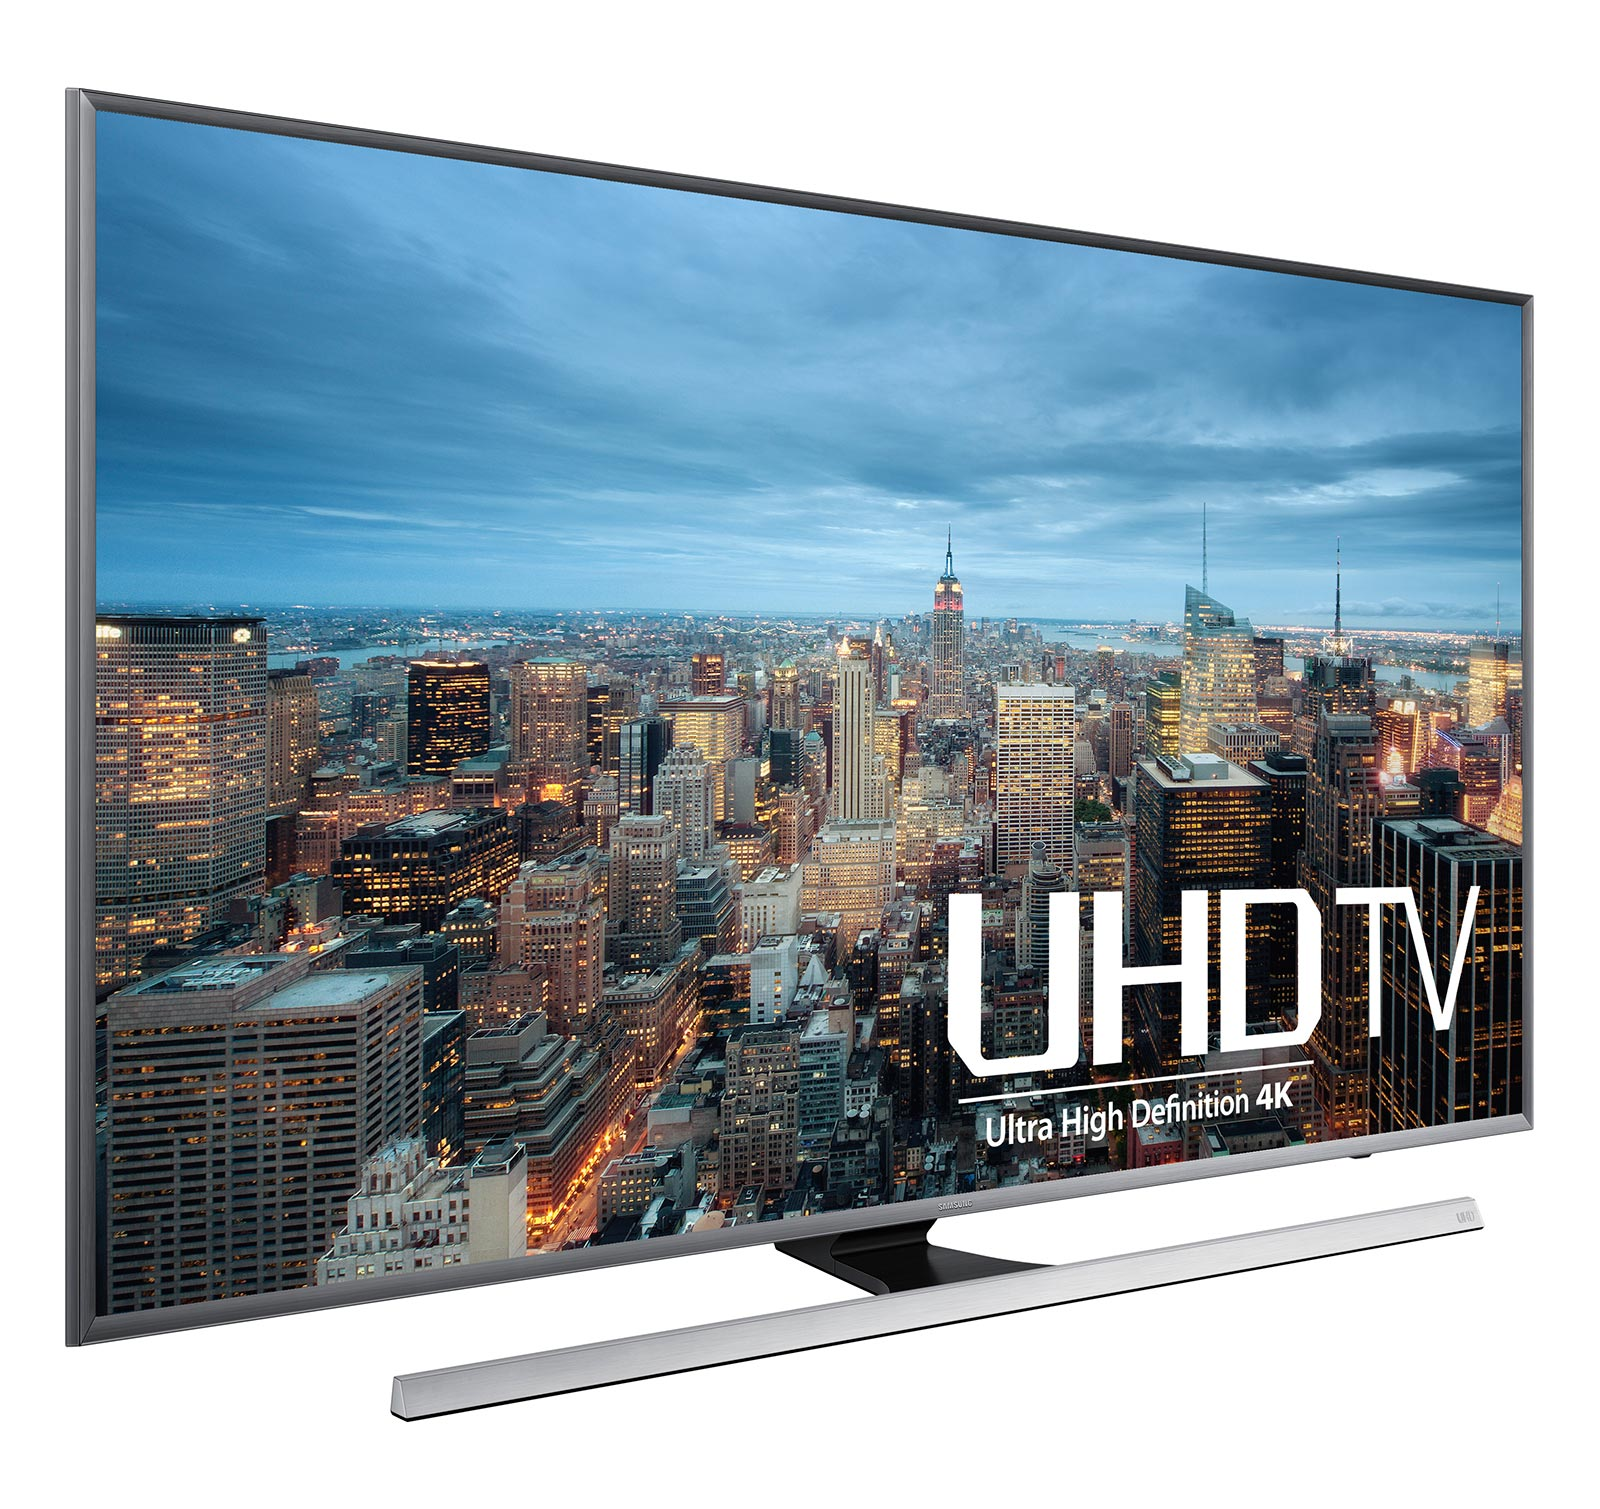 Tv Uhd 4k Samsung Un75ju7100 Open Box 75 Inch 4k Uhd Smart Led Tv